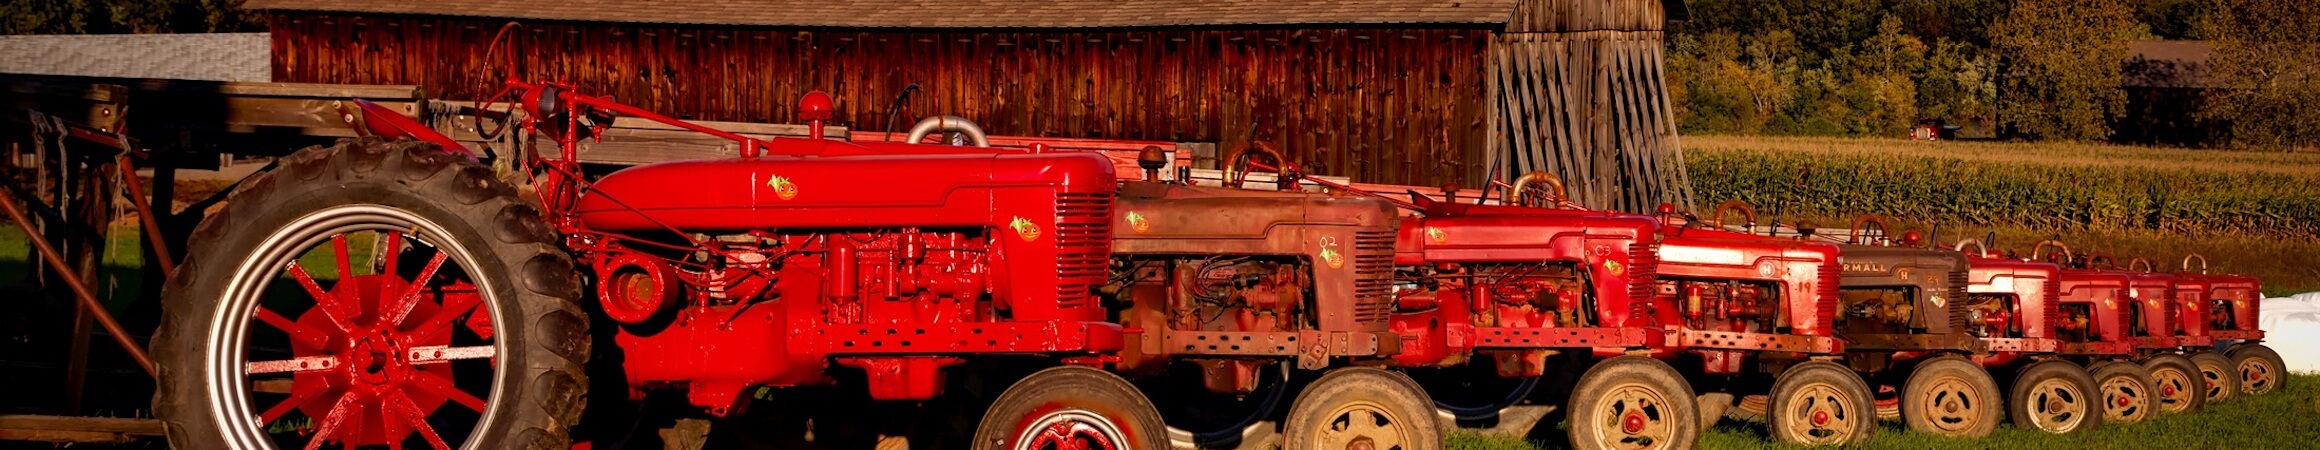 Red Tractor 02